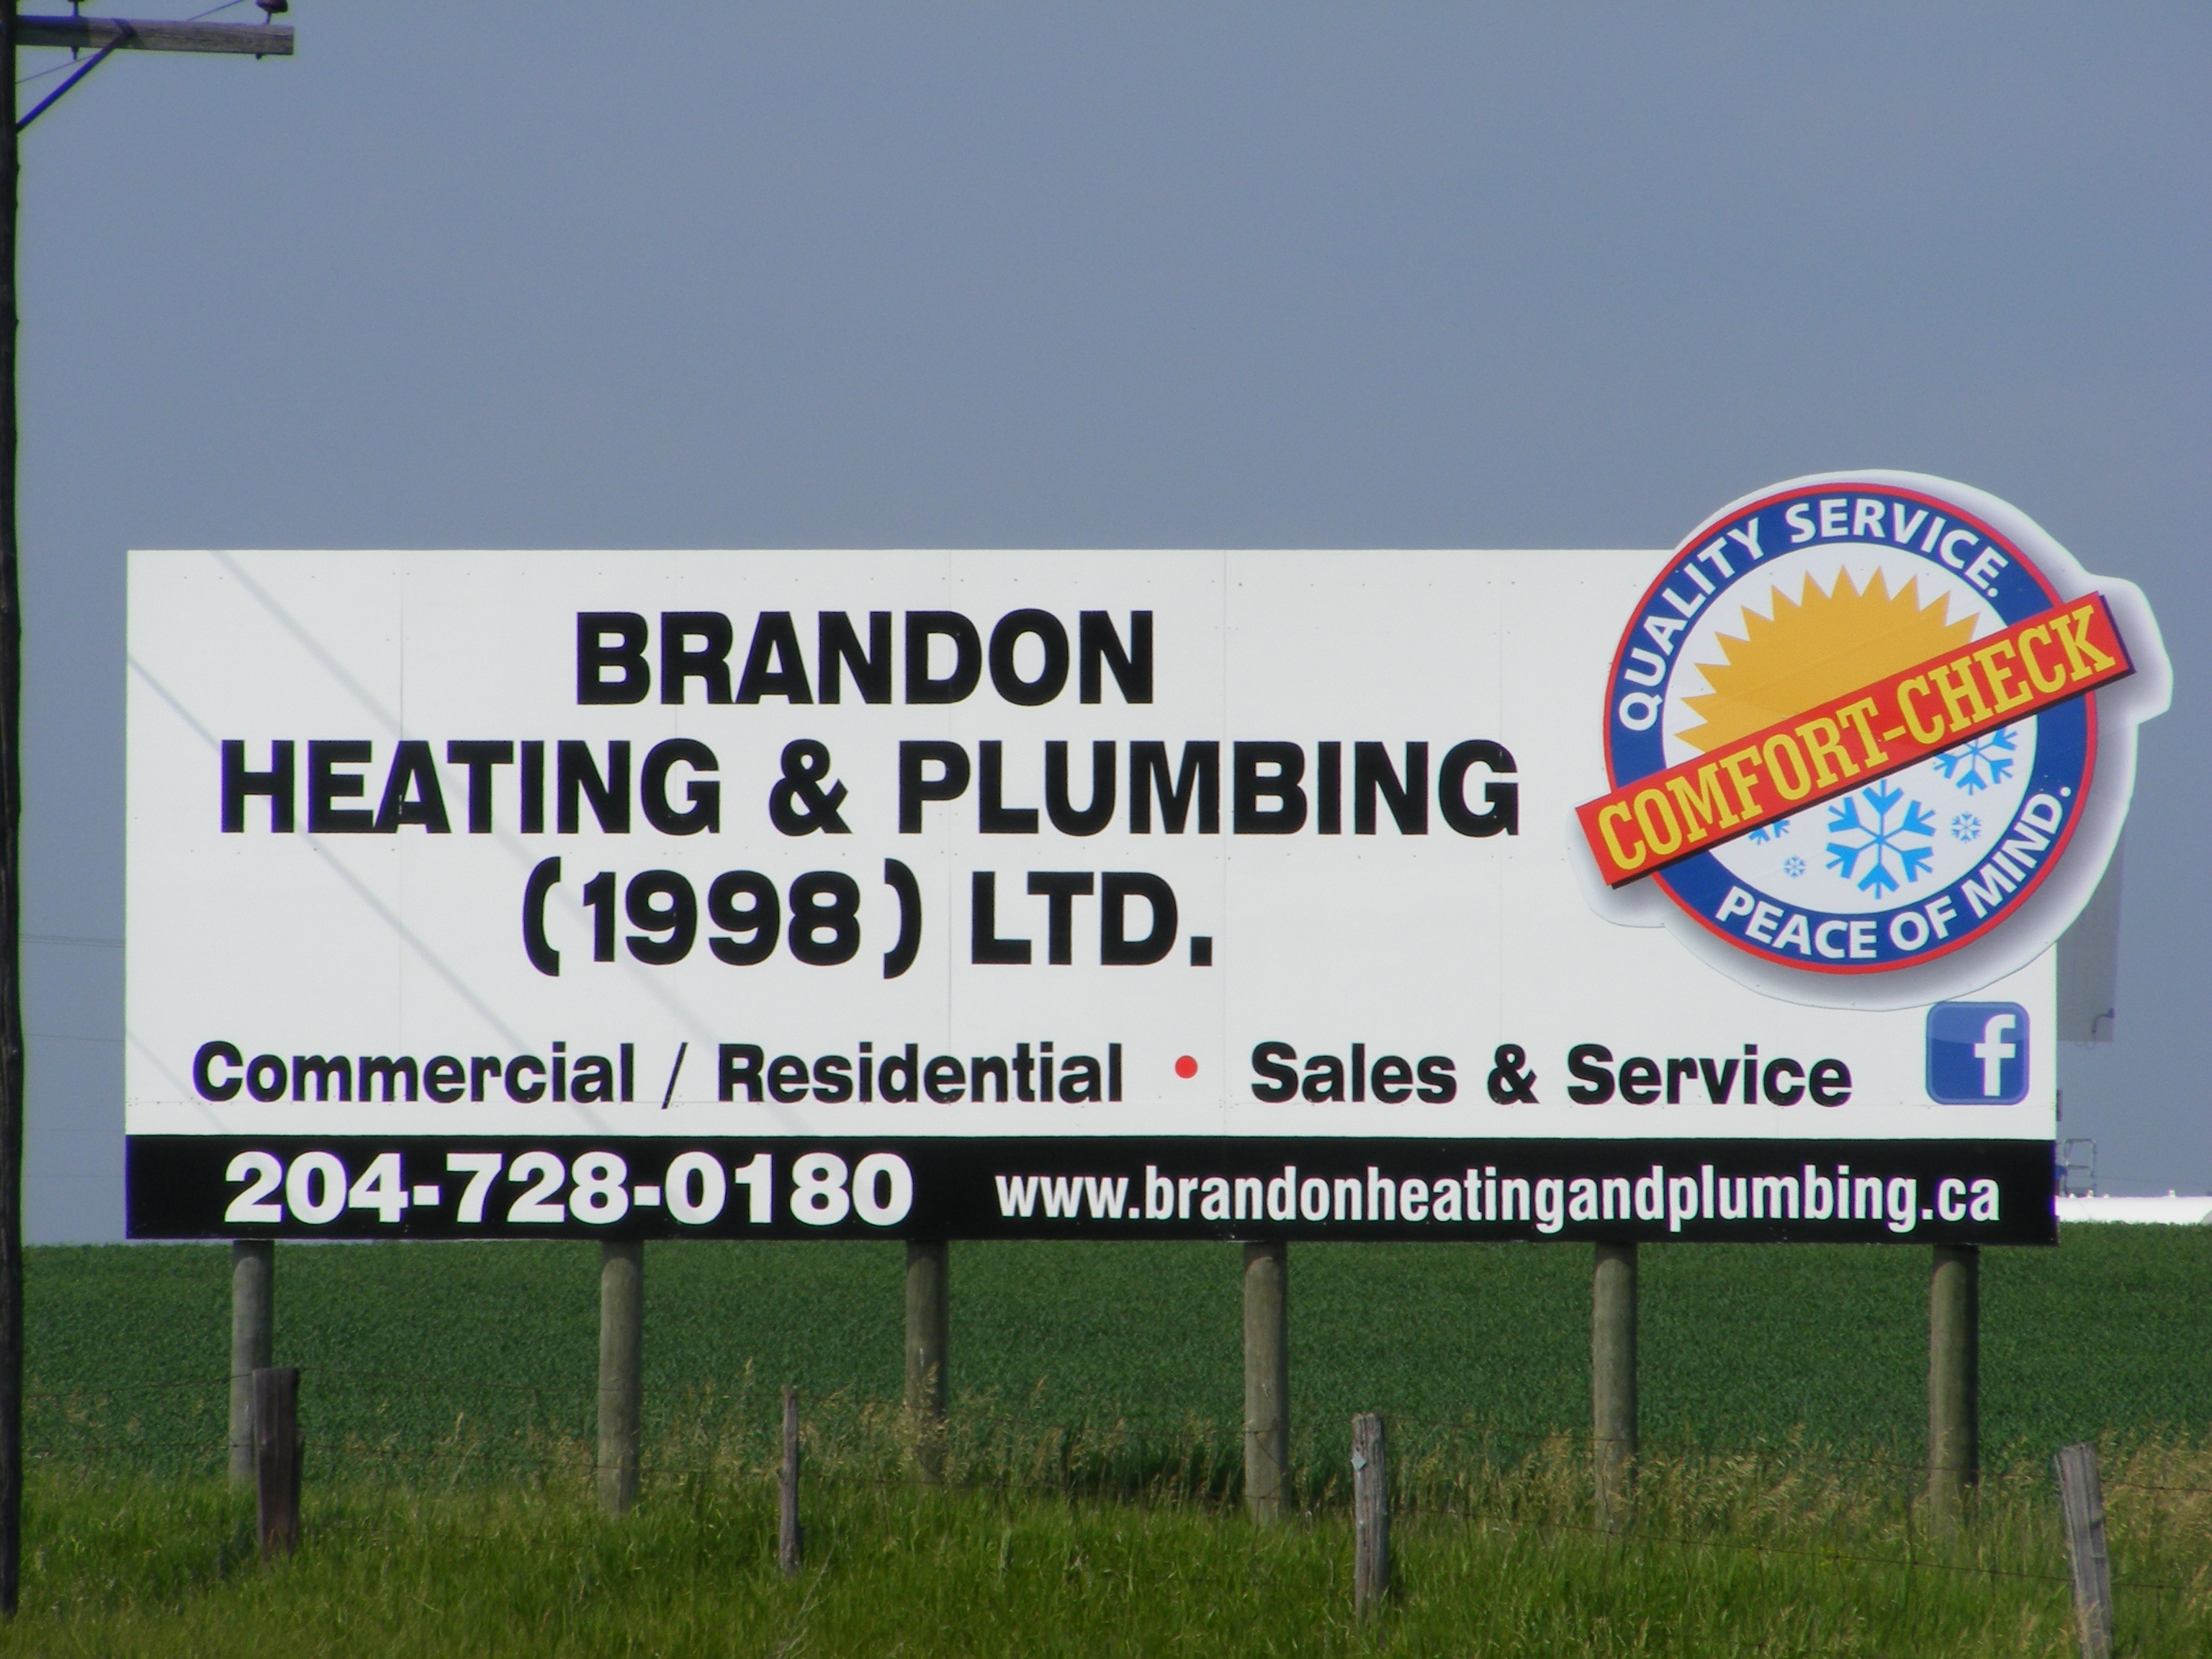 Brandon Heating & Plumbing